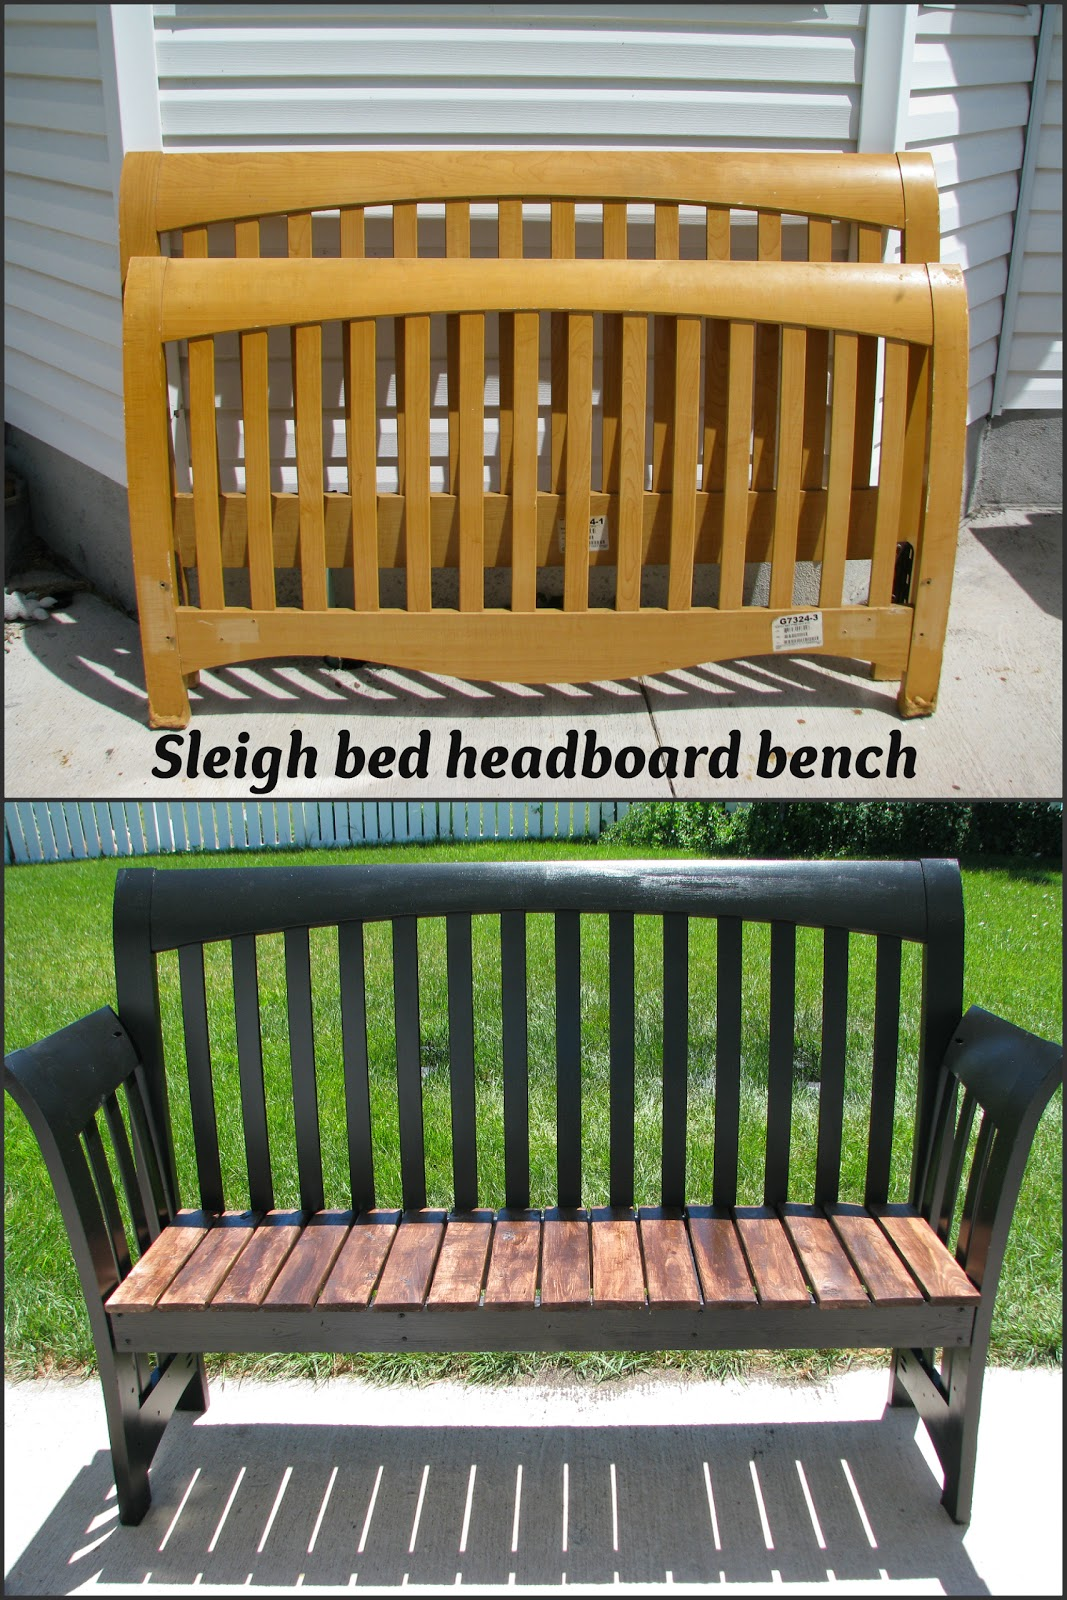 My So Called Diy Blog Sleigh Bed Headboard Bench